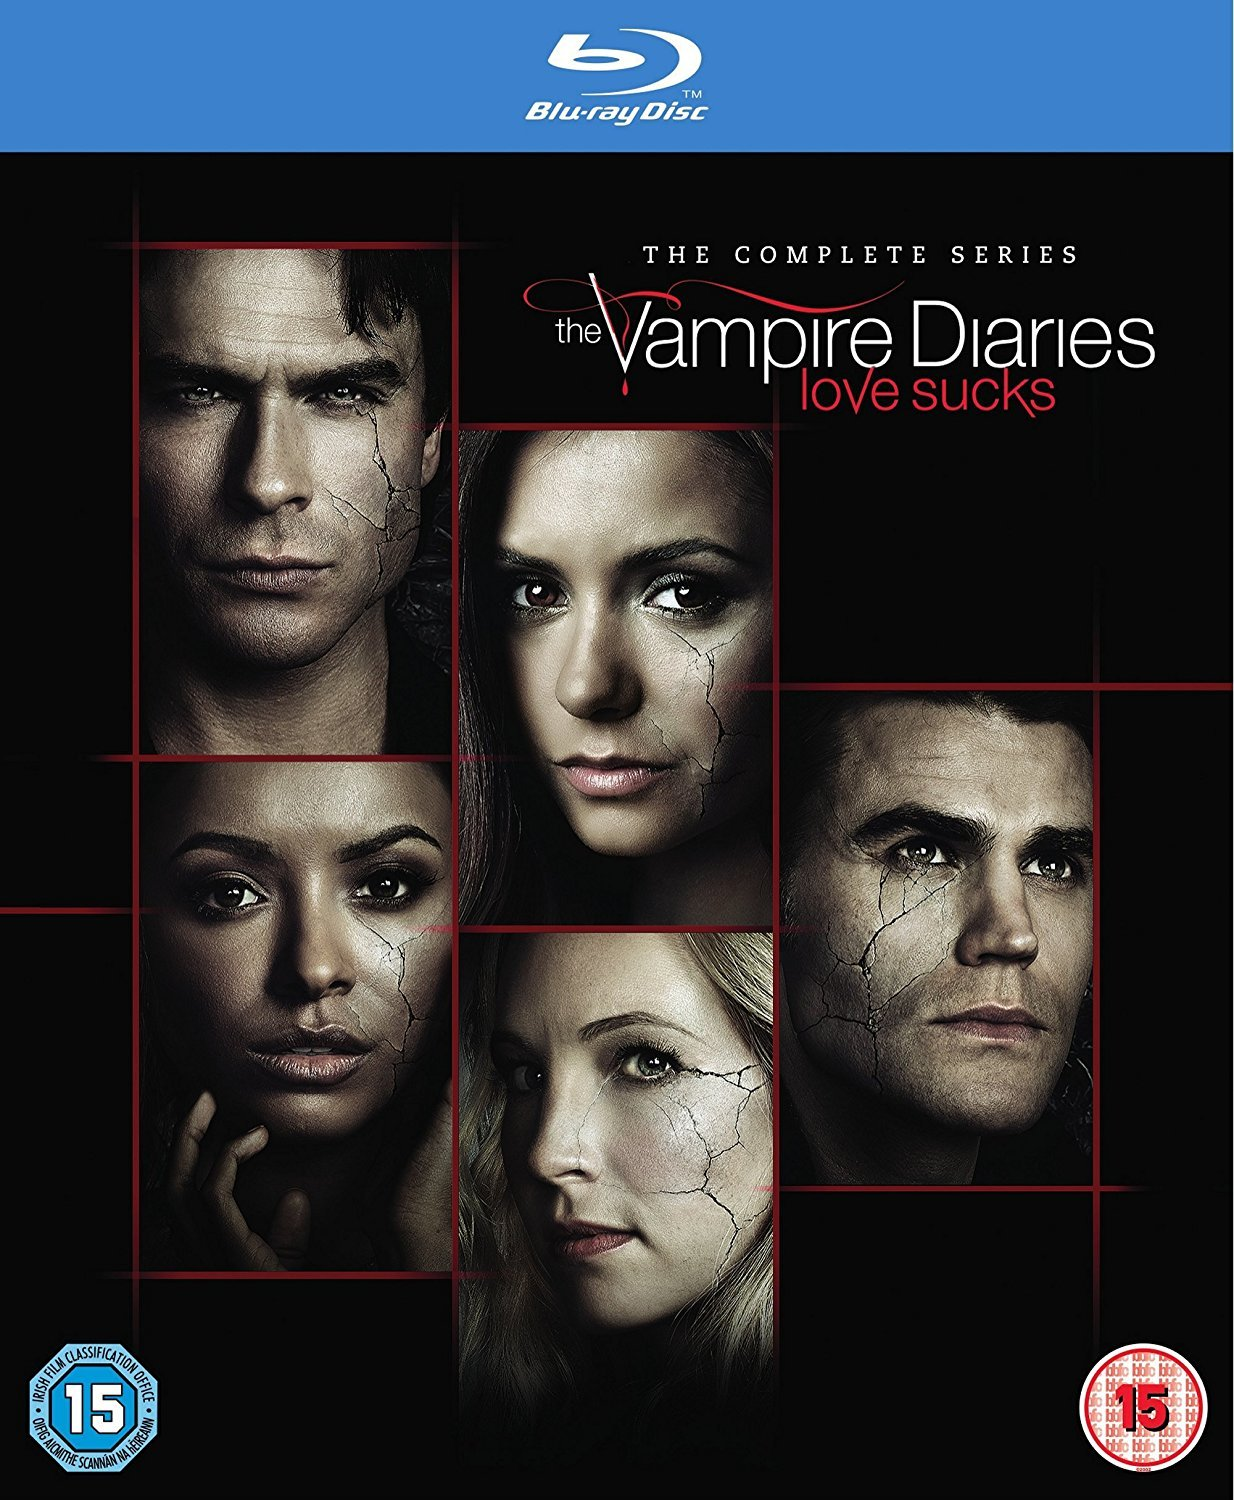 The Vampire Diaries: The Complete Series [Blu-ray] [2017] [Region Free]